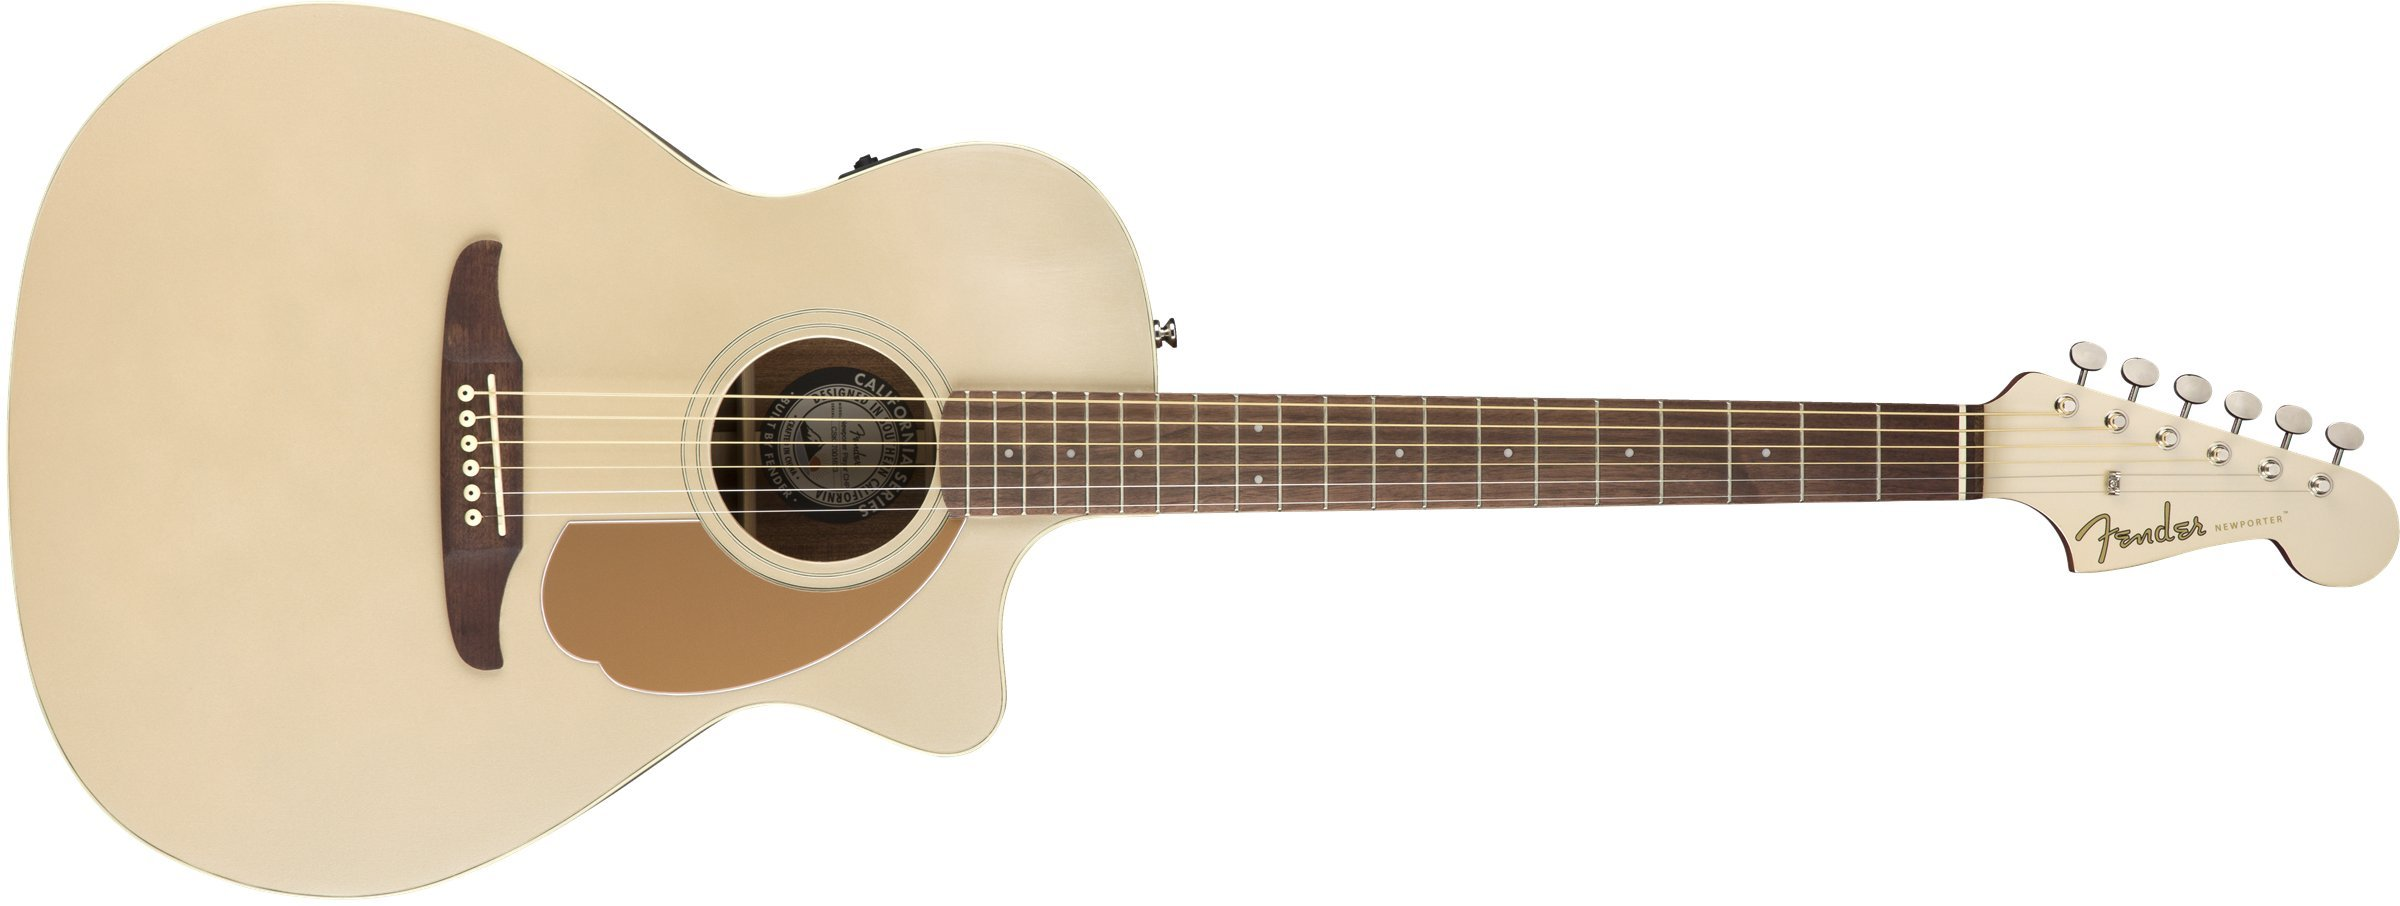 Fender Newporter Player - California Series Acoustic Guitar - Champagne